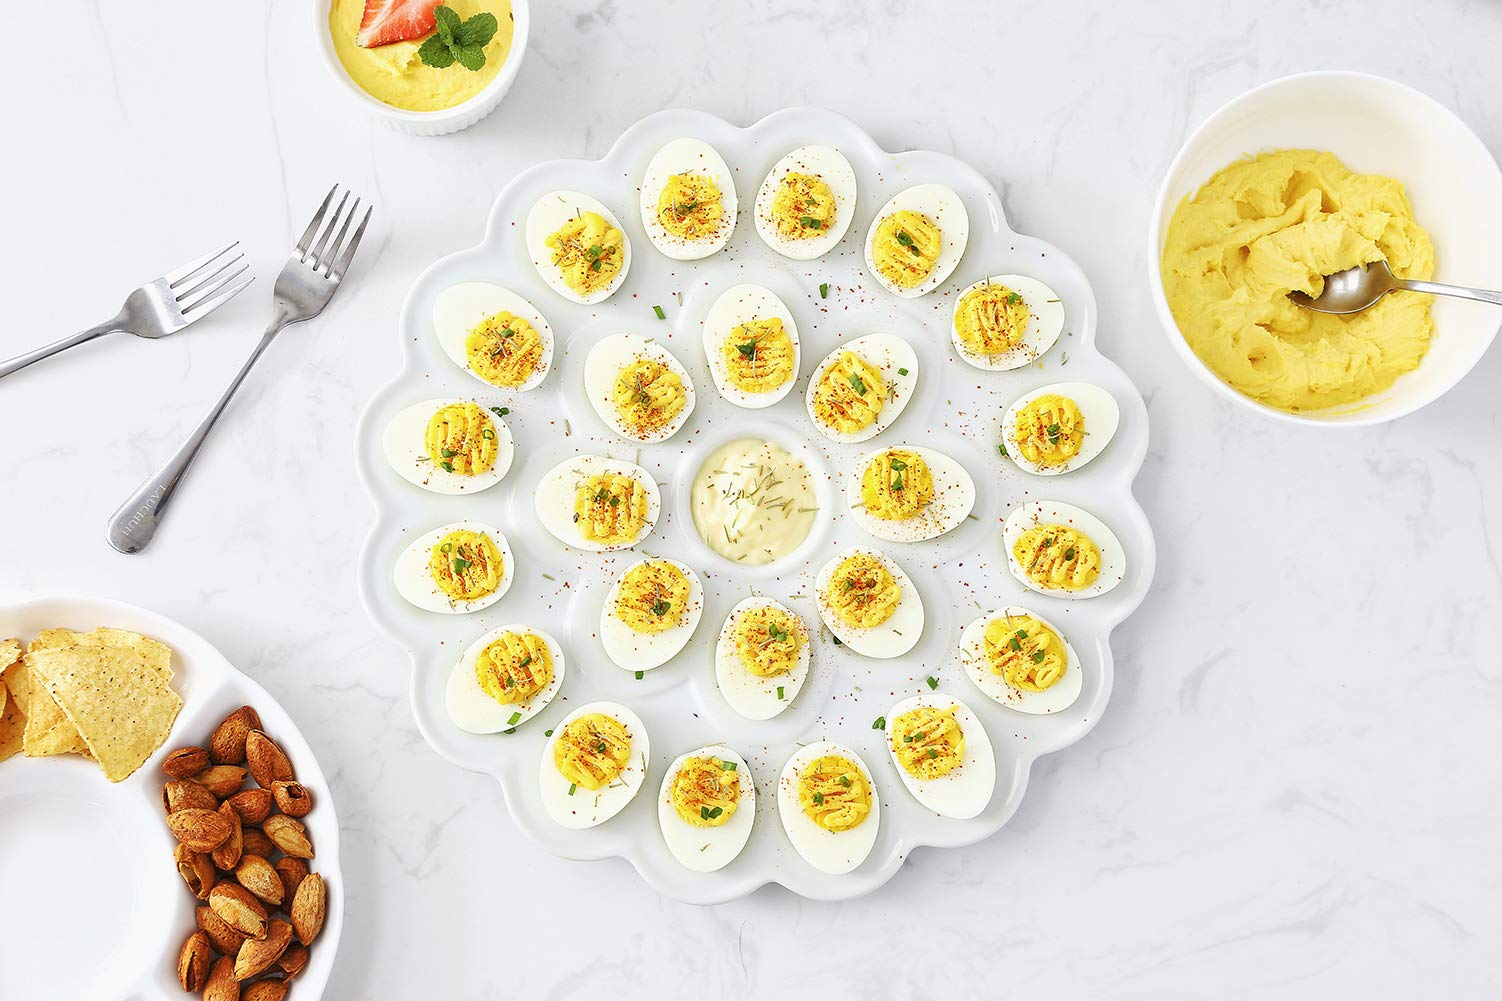 13.5-inch Porcelain Deviled Egg Tray/Dish White Ceramic Egg Platter with 25-Compartment by LAUCHUH (Image #4)